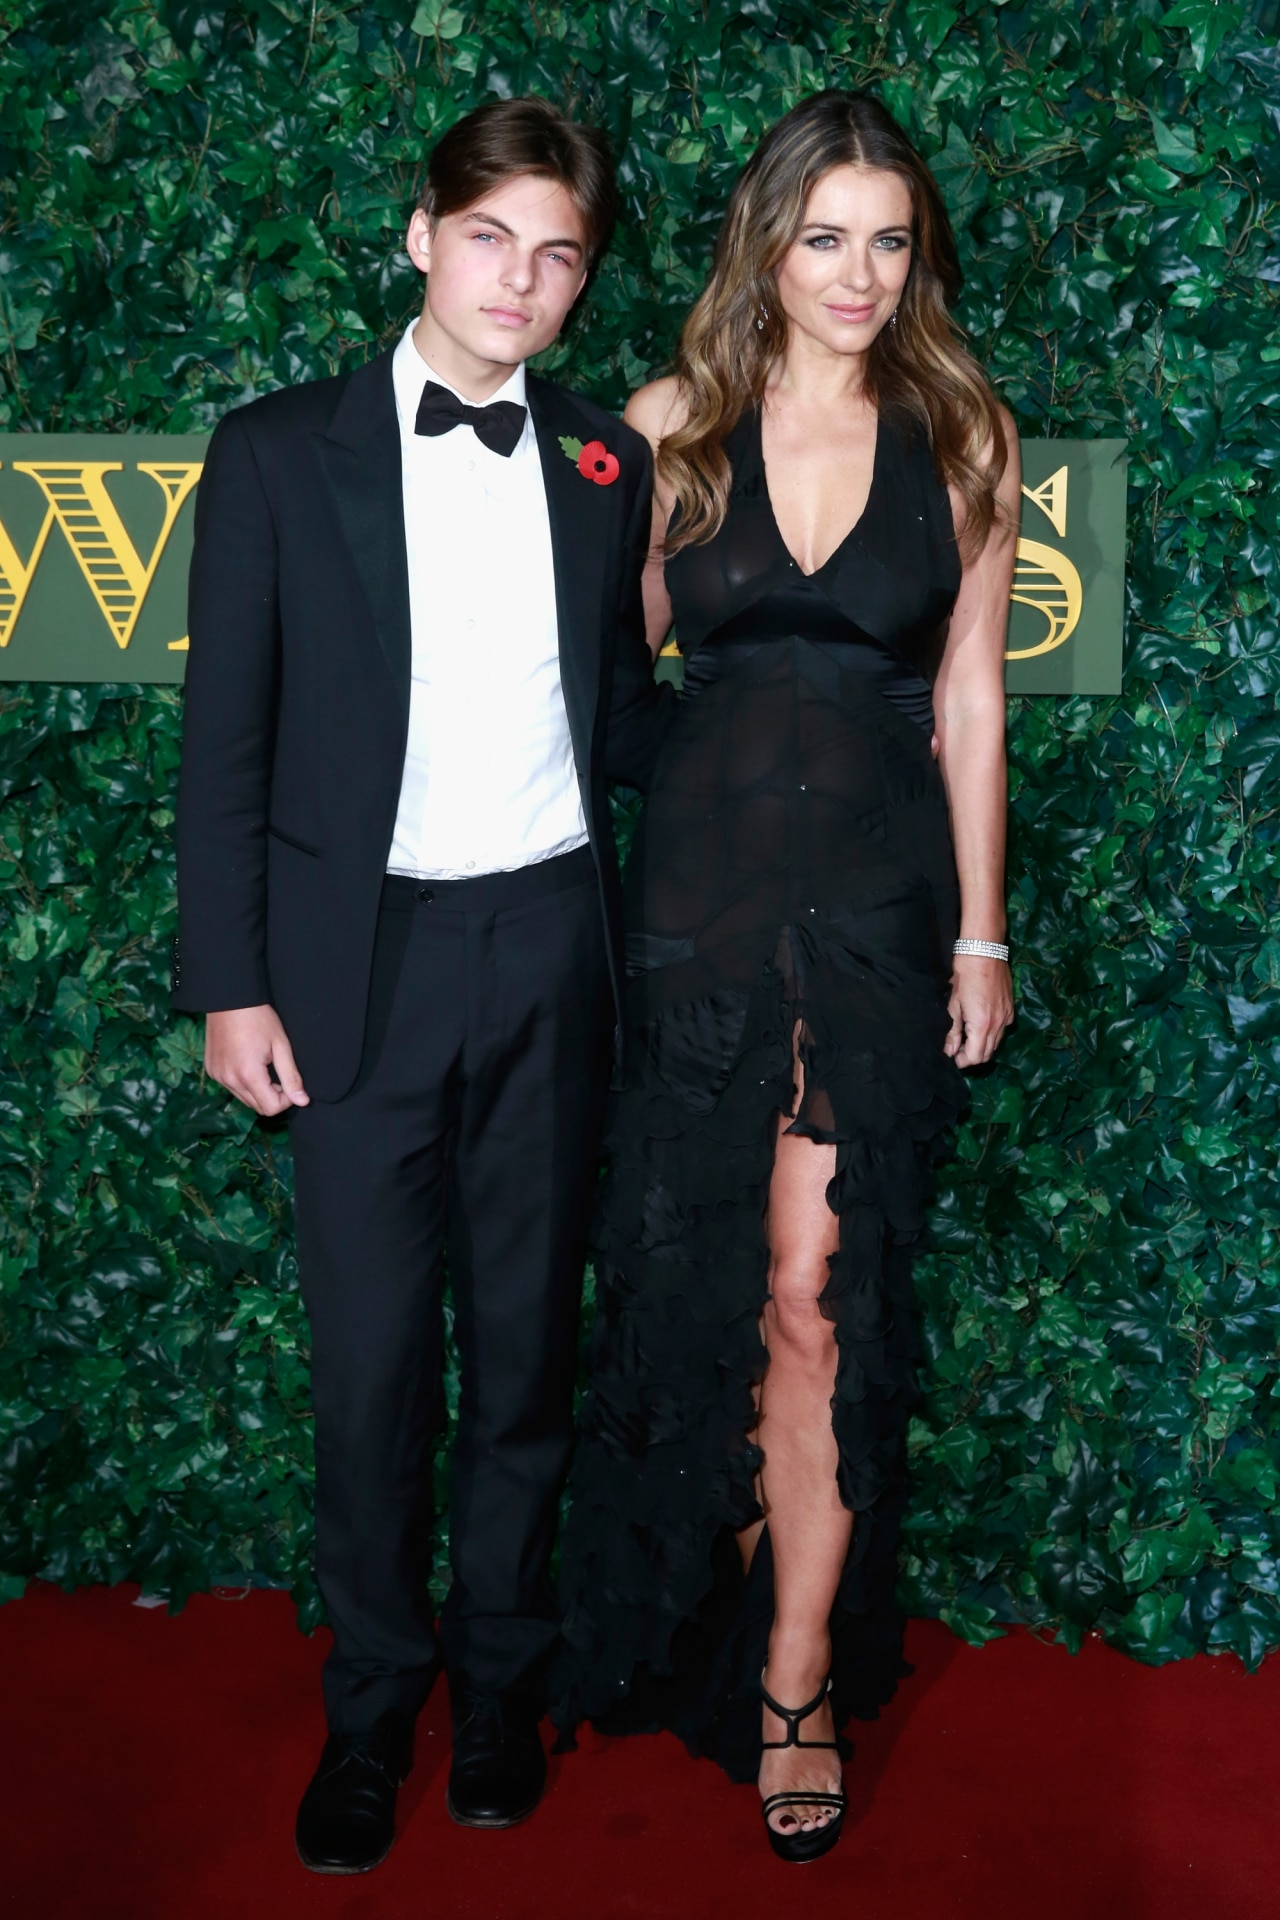 Elizabeth Hurley's model son Damian just paid tribute to that iconic Versace dress